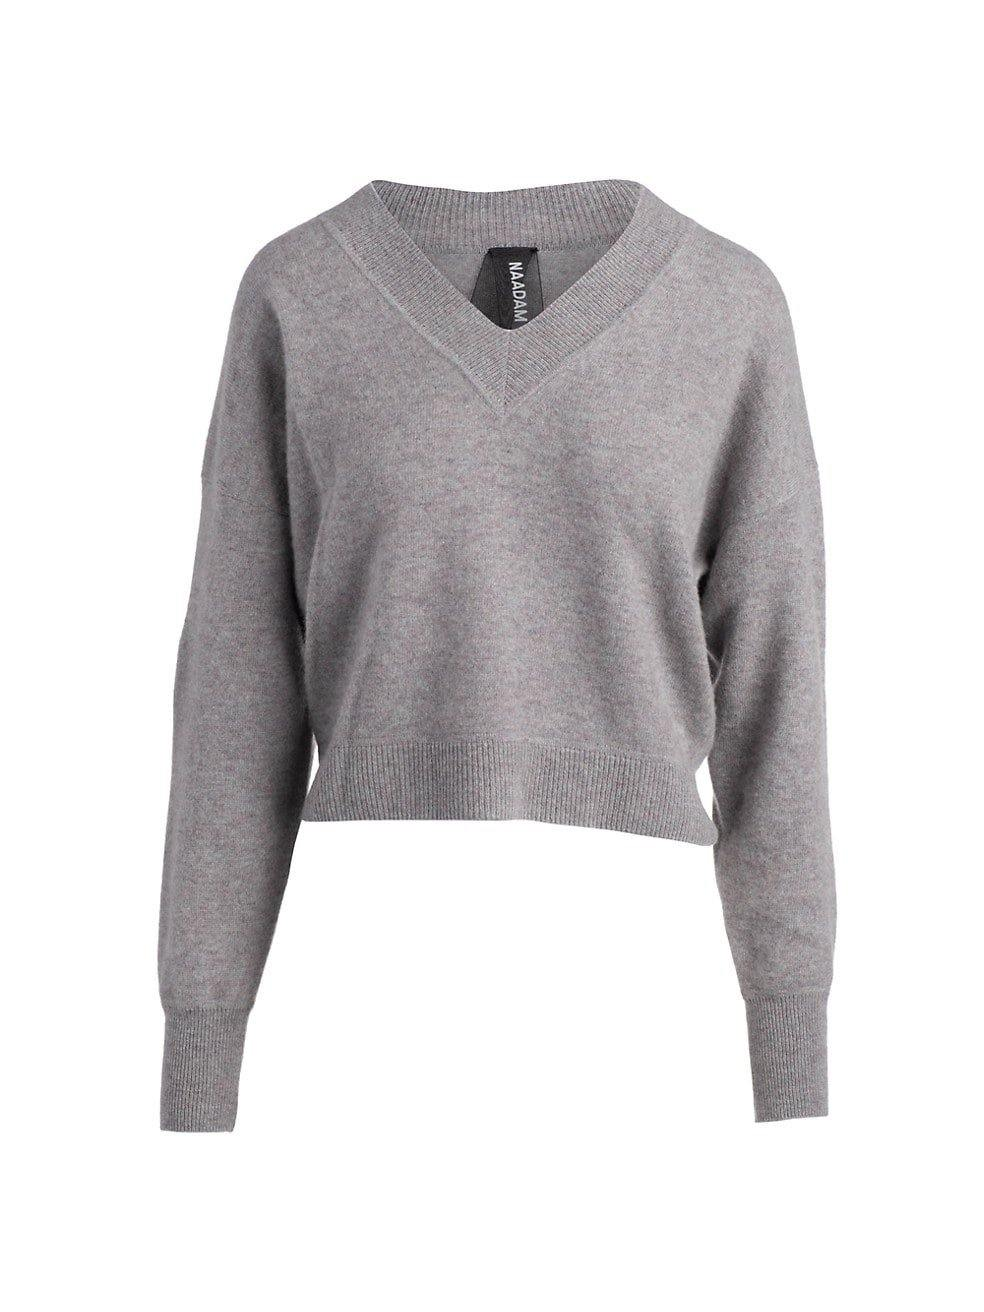 Deep V Neck Cashmere Pullover - Marled Grey - Wheat Boutique